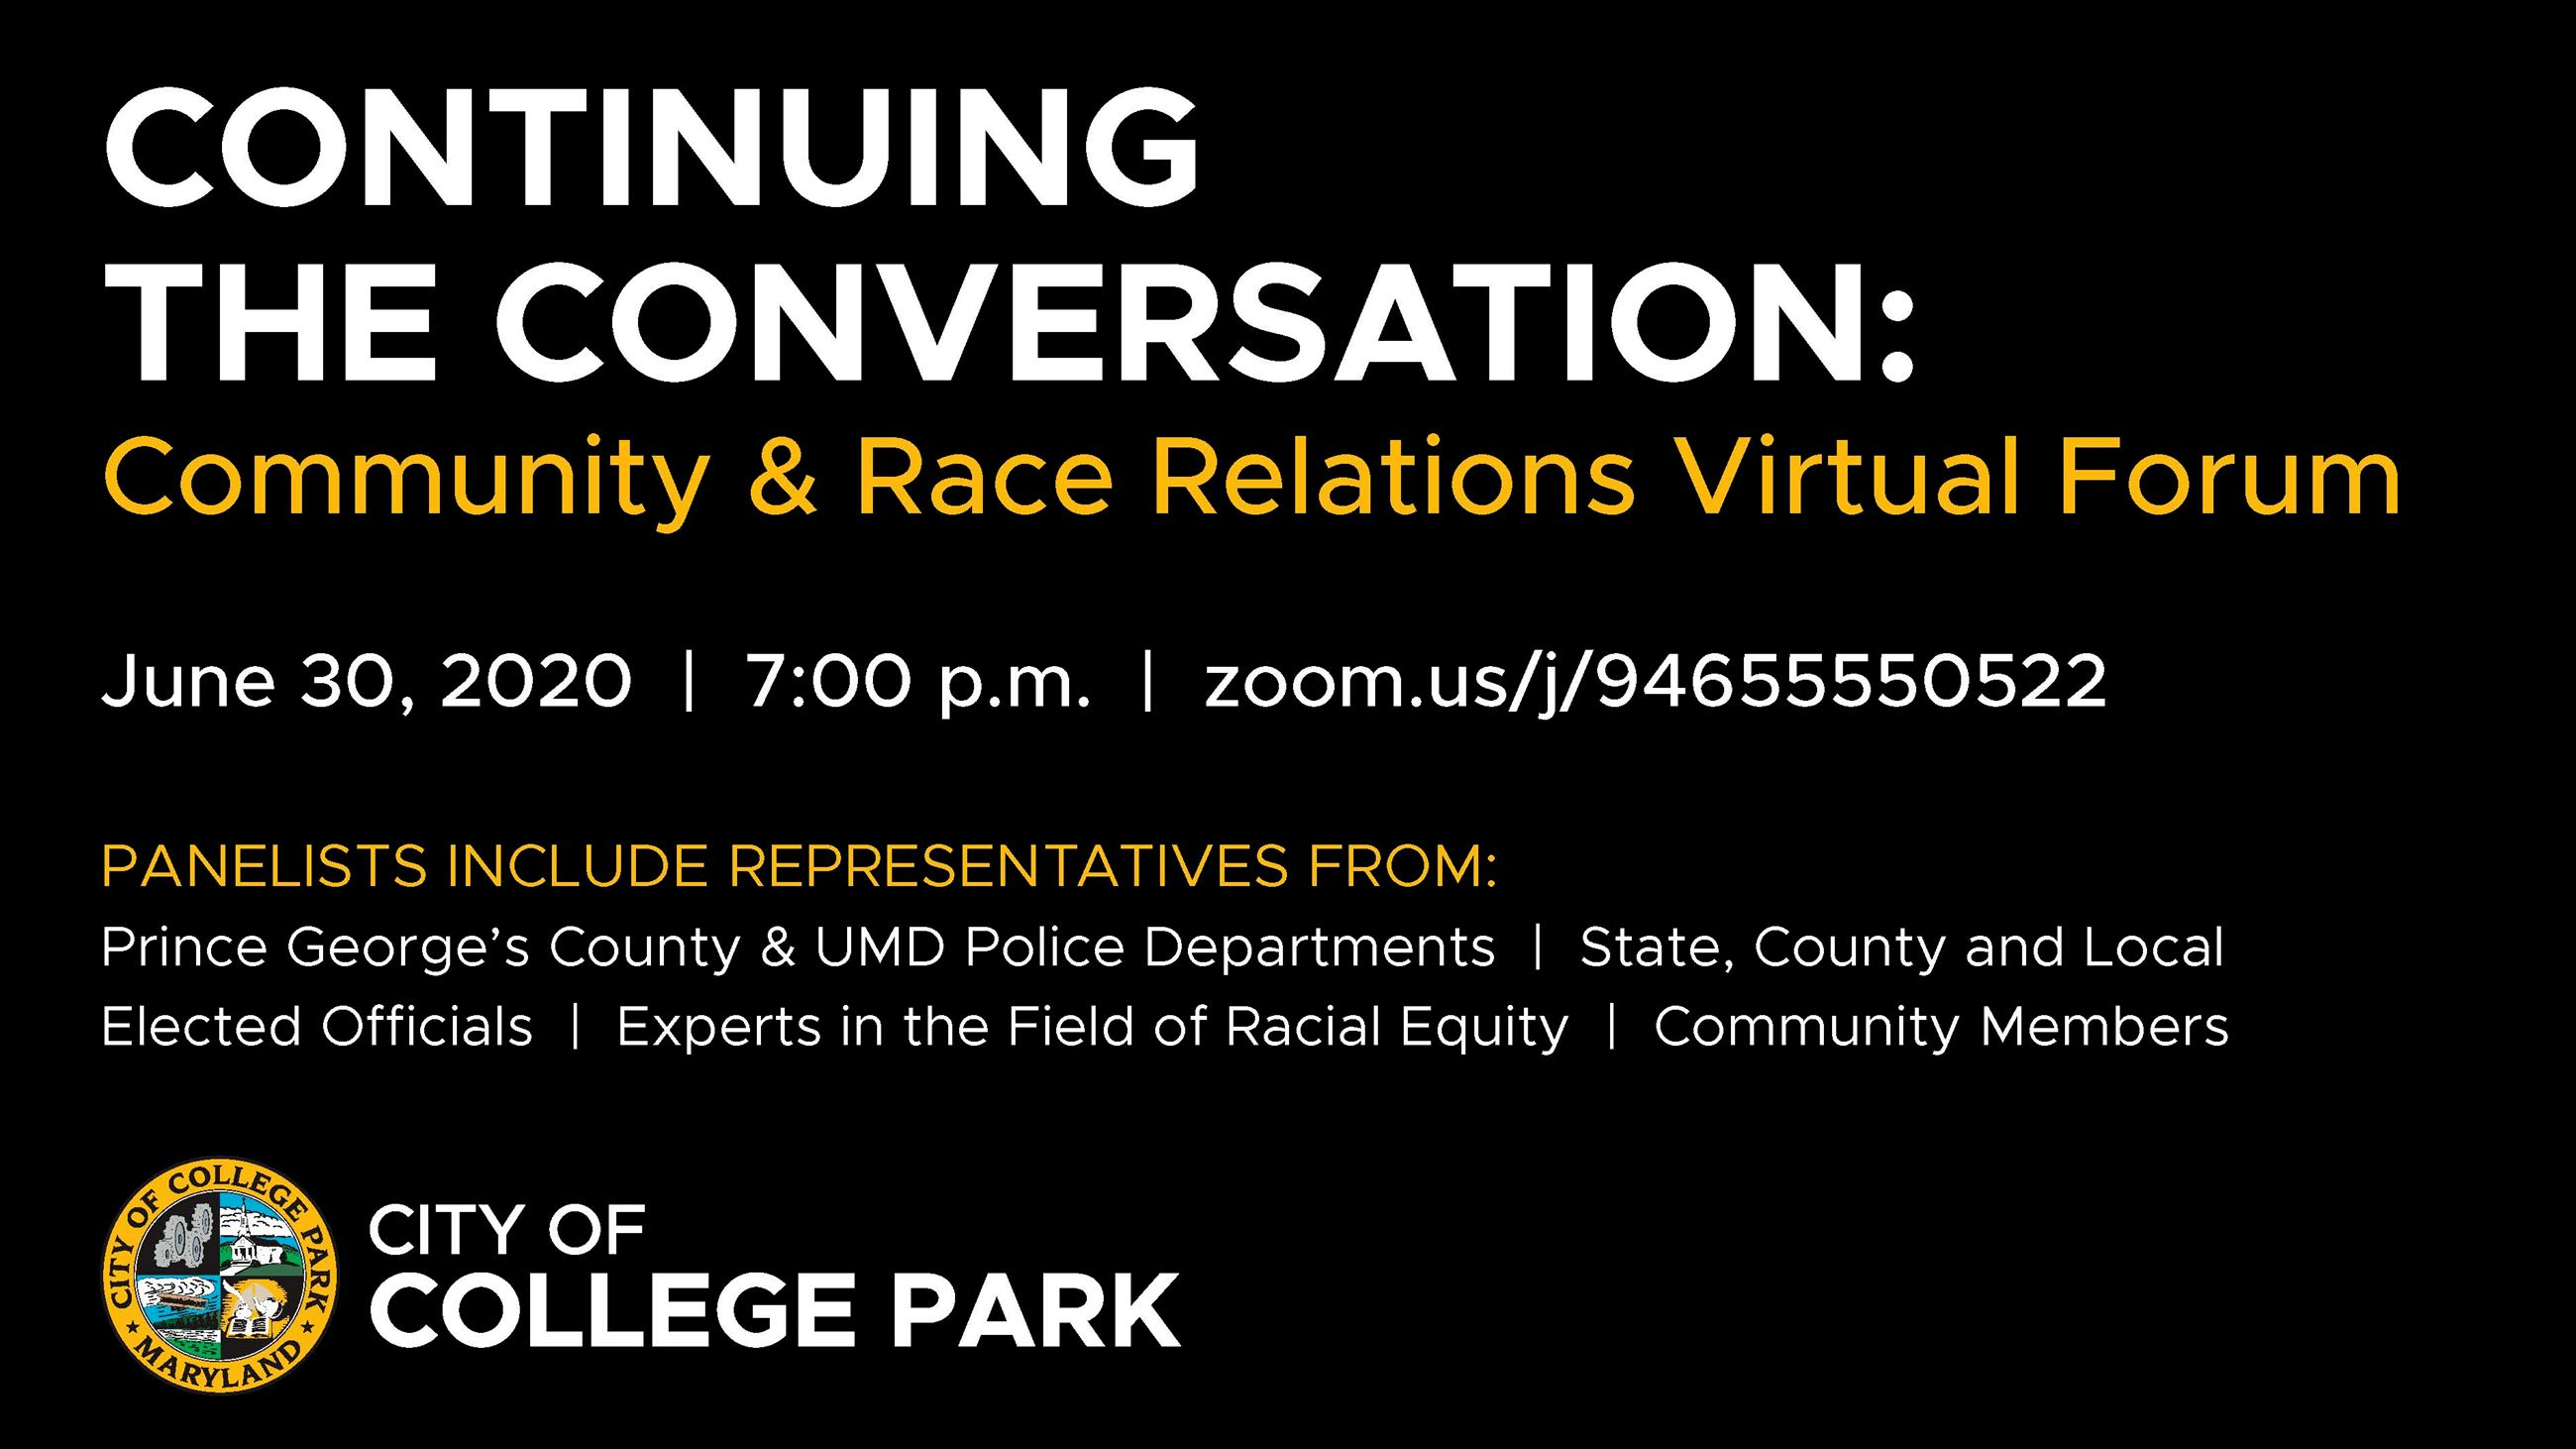 Continuing the Conversation Virtual Forum